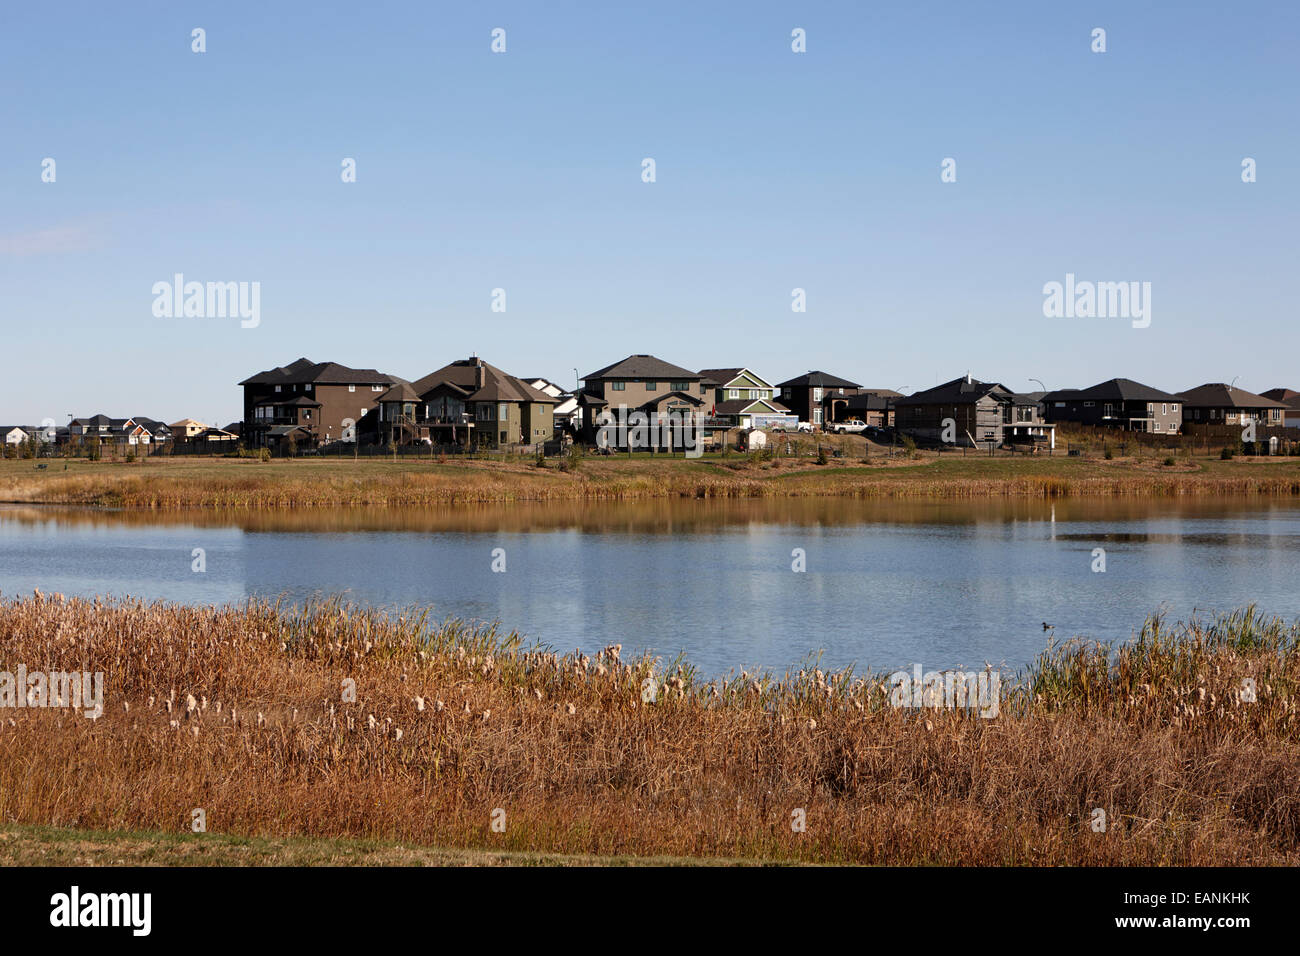 managed lakeland habitat area landscaped protected suburb saskatoon Saskatchewan Canada - Stock Image